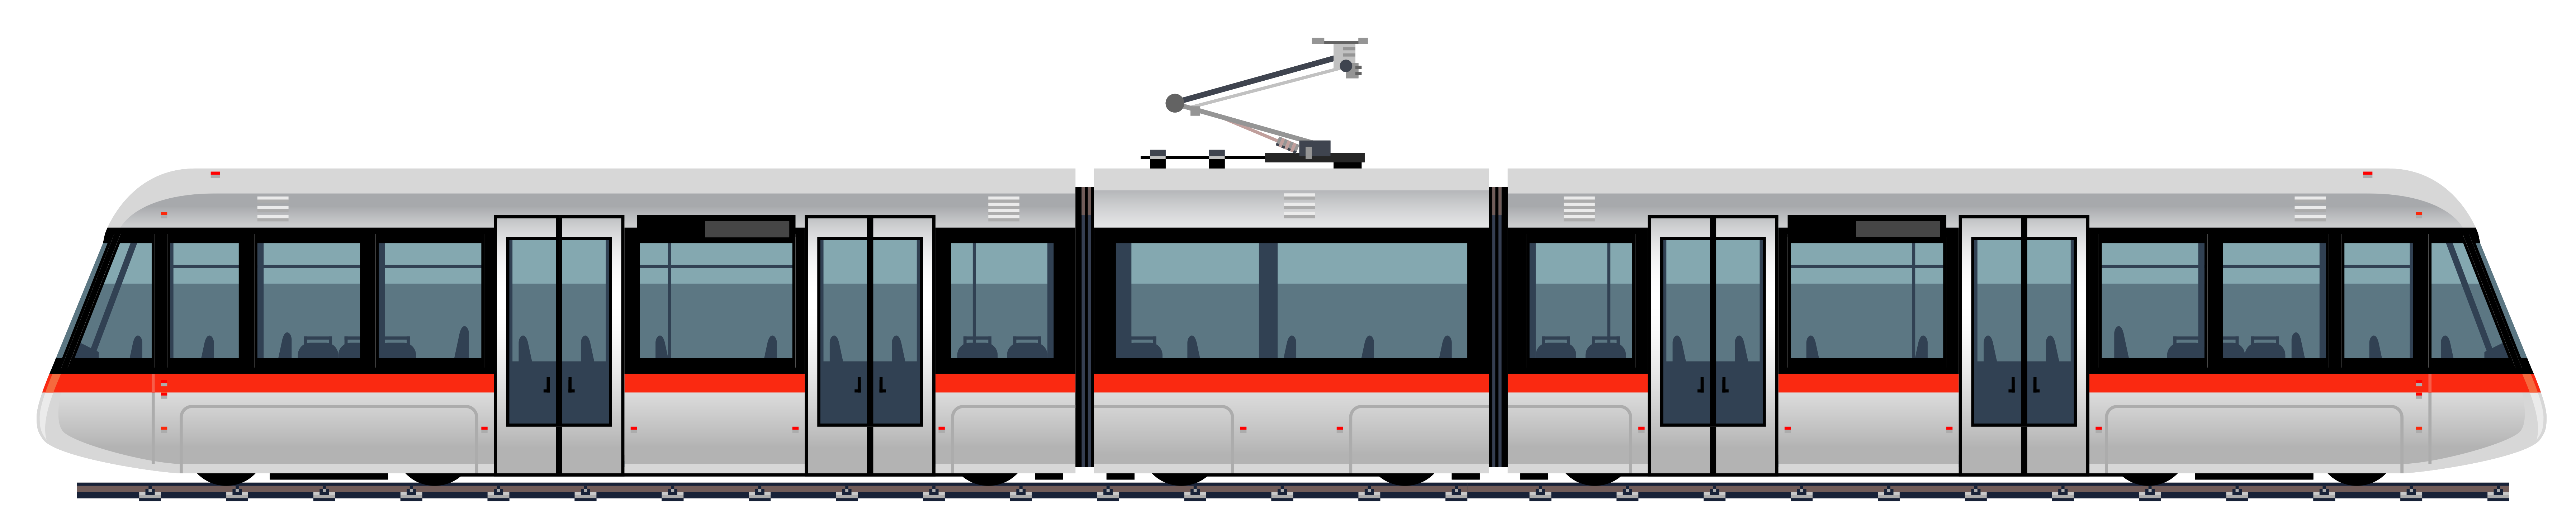 Cable car clipart vector freeuse library Tram PNG Clipart - Best WEB Clipart vector freeuse library